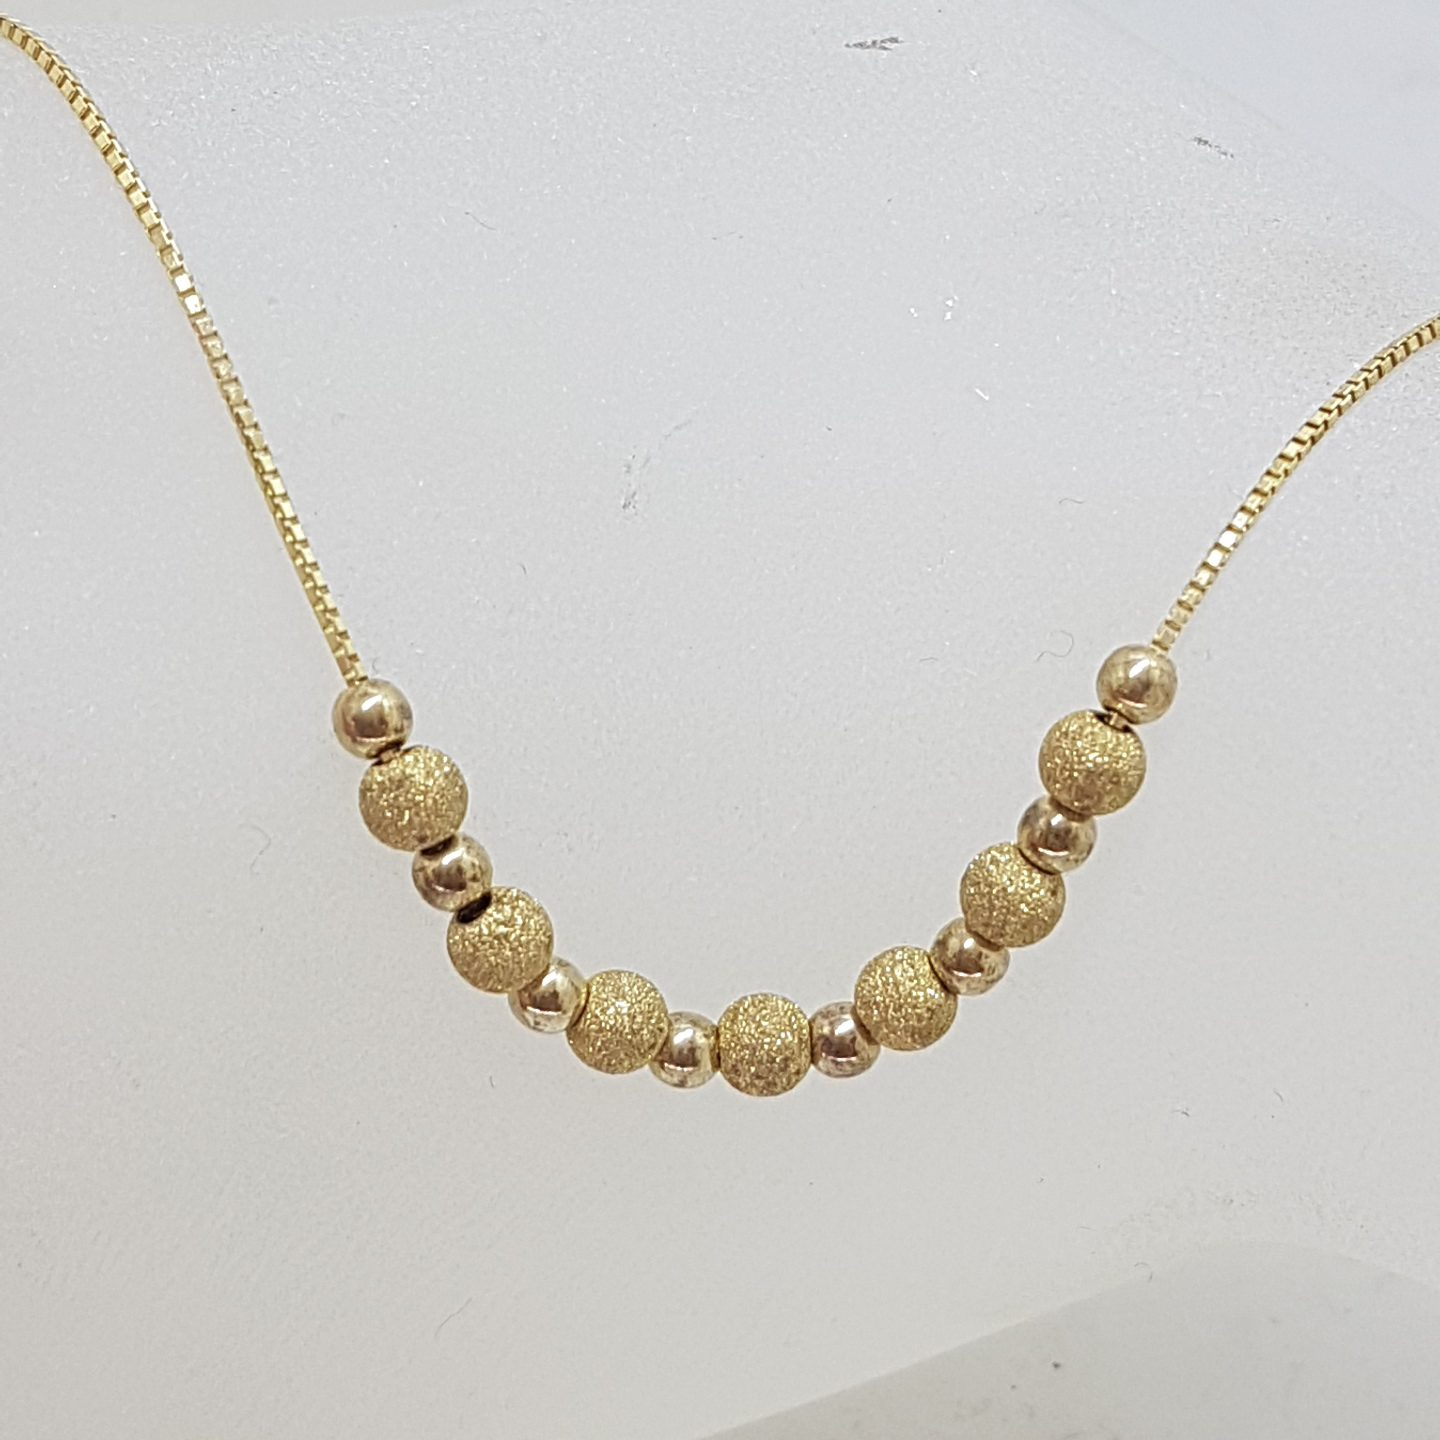 9ct Yellow Gold Ball Design Necklace / Chain